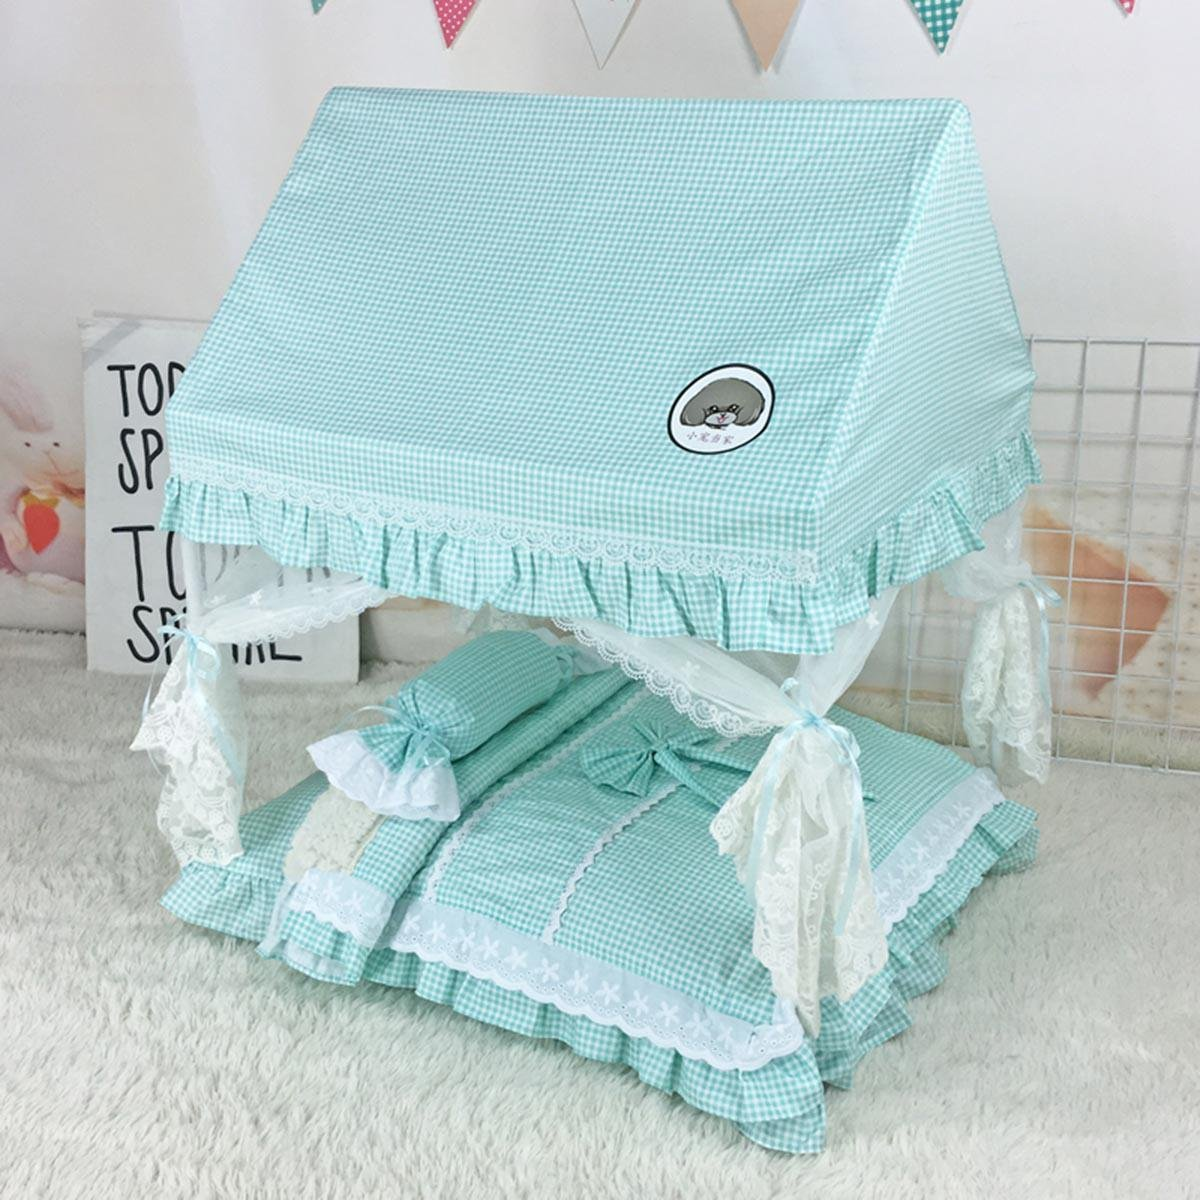 3 Lshanzhizui Pet tent Cat nest Washable Cat House Bomei Bichon Teddy dog Pet Princess Bed Closed type Kennel Pet mosquito net bed, C, XXL